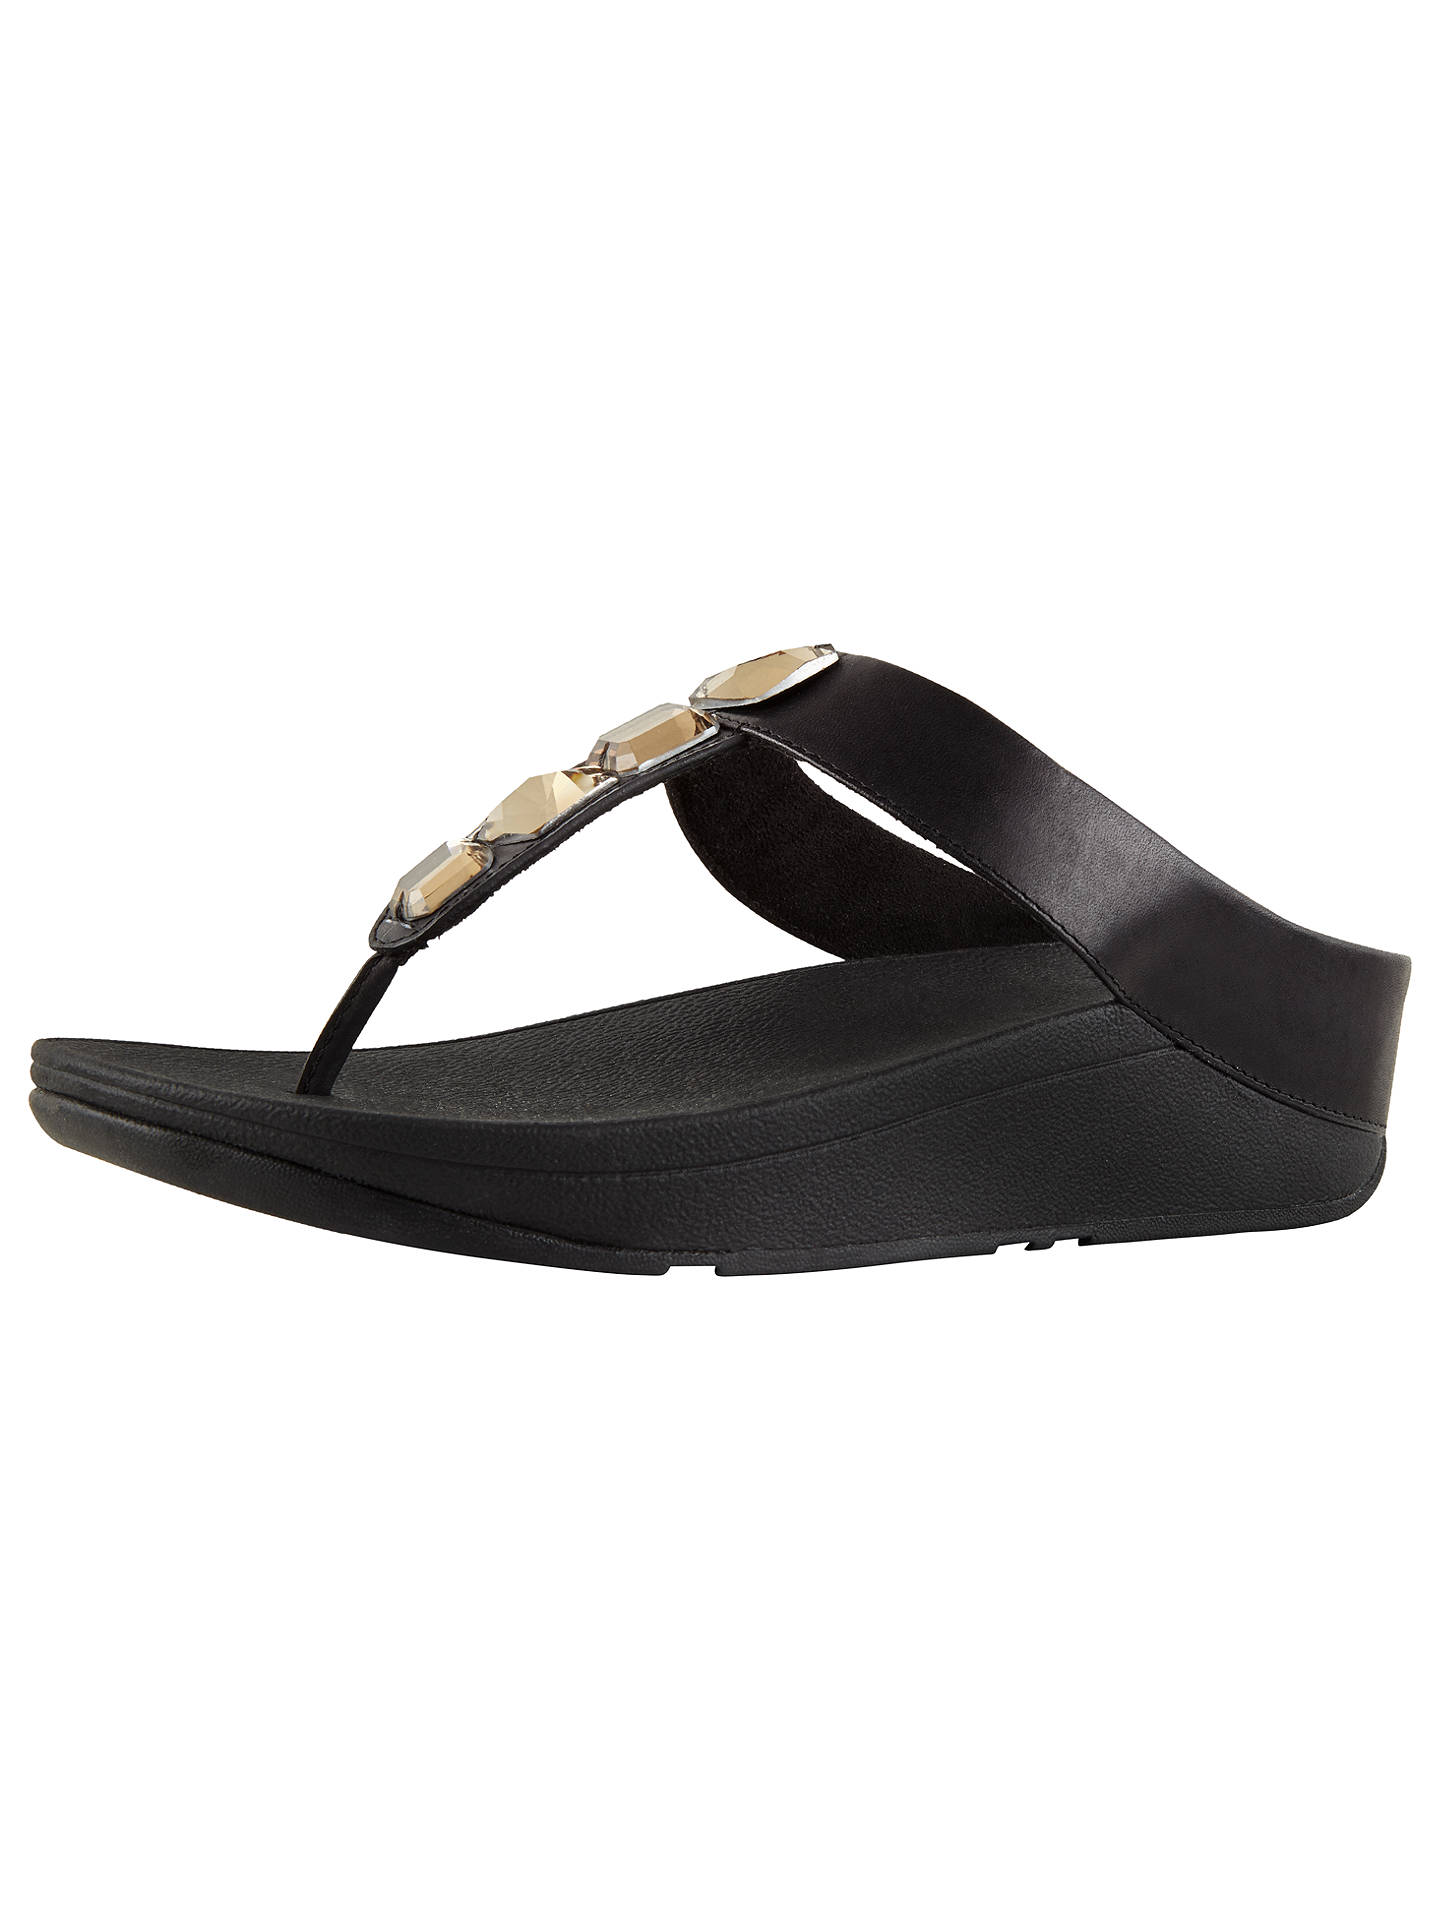 39605c04f1fe FitFlop Roka Embellished Toe Post Sandals at John Lewis   Partners